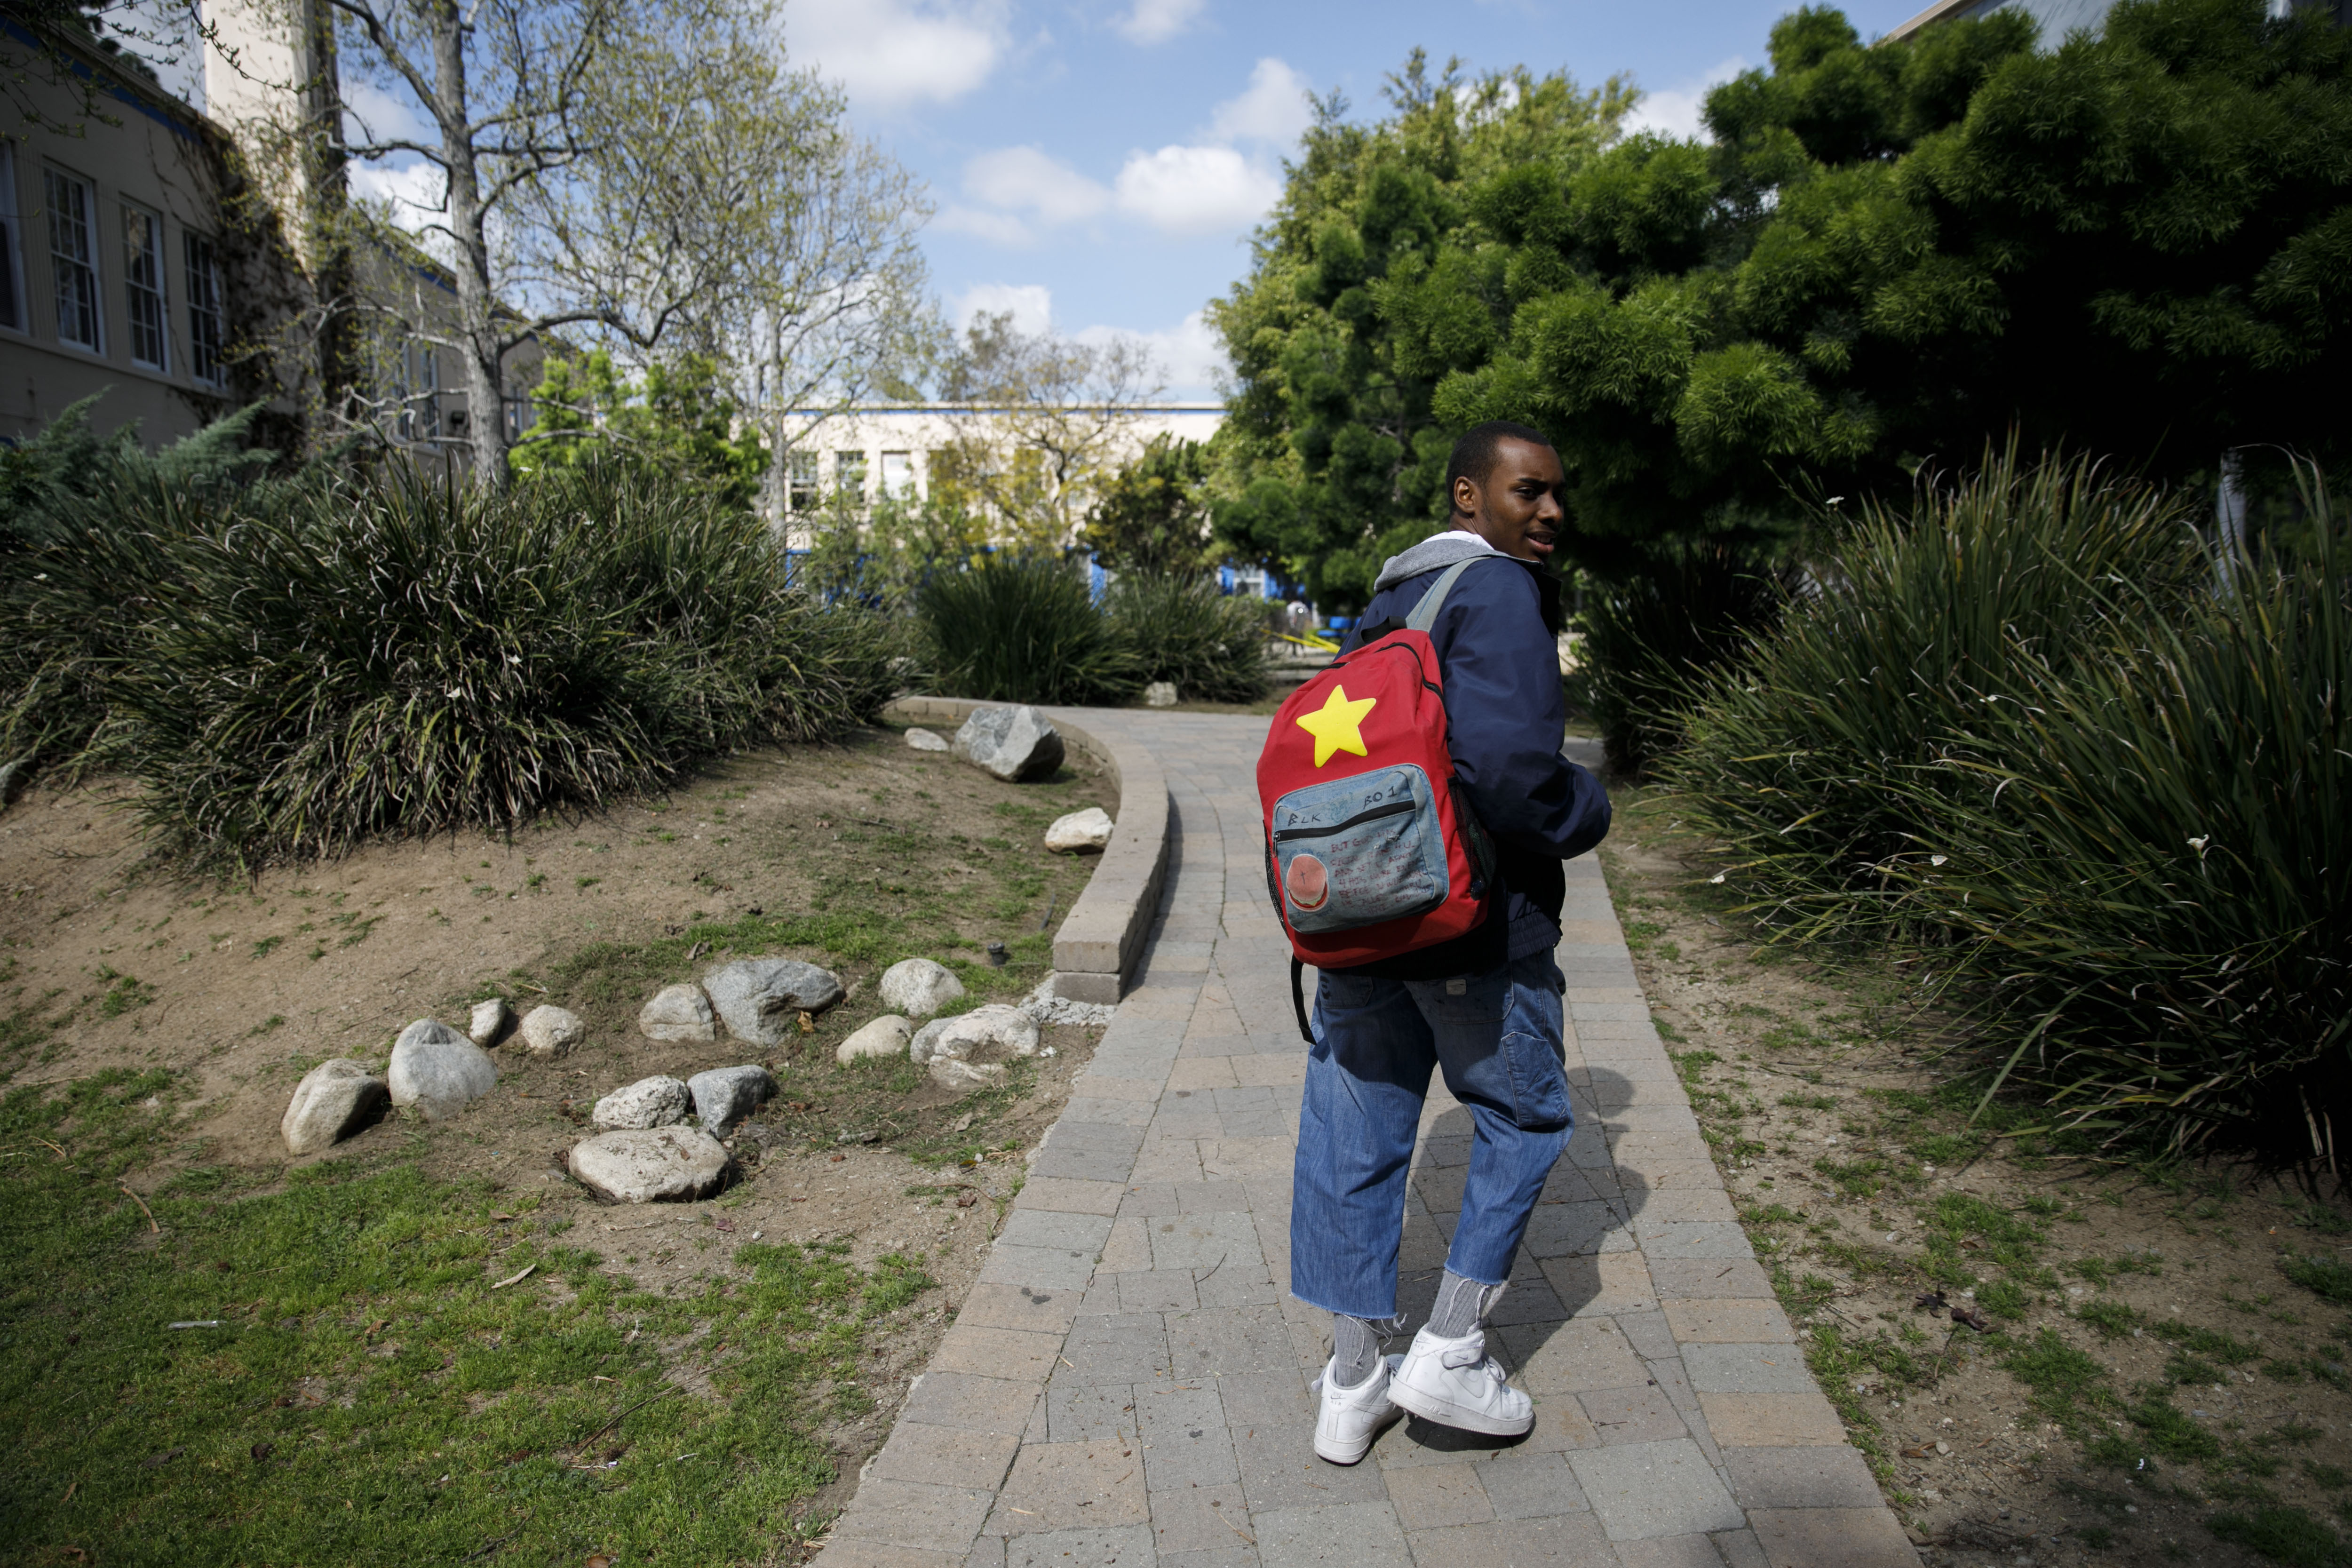 They grew up in the shadow of USC. Would the school let them in?